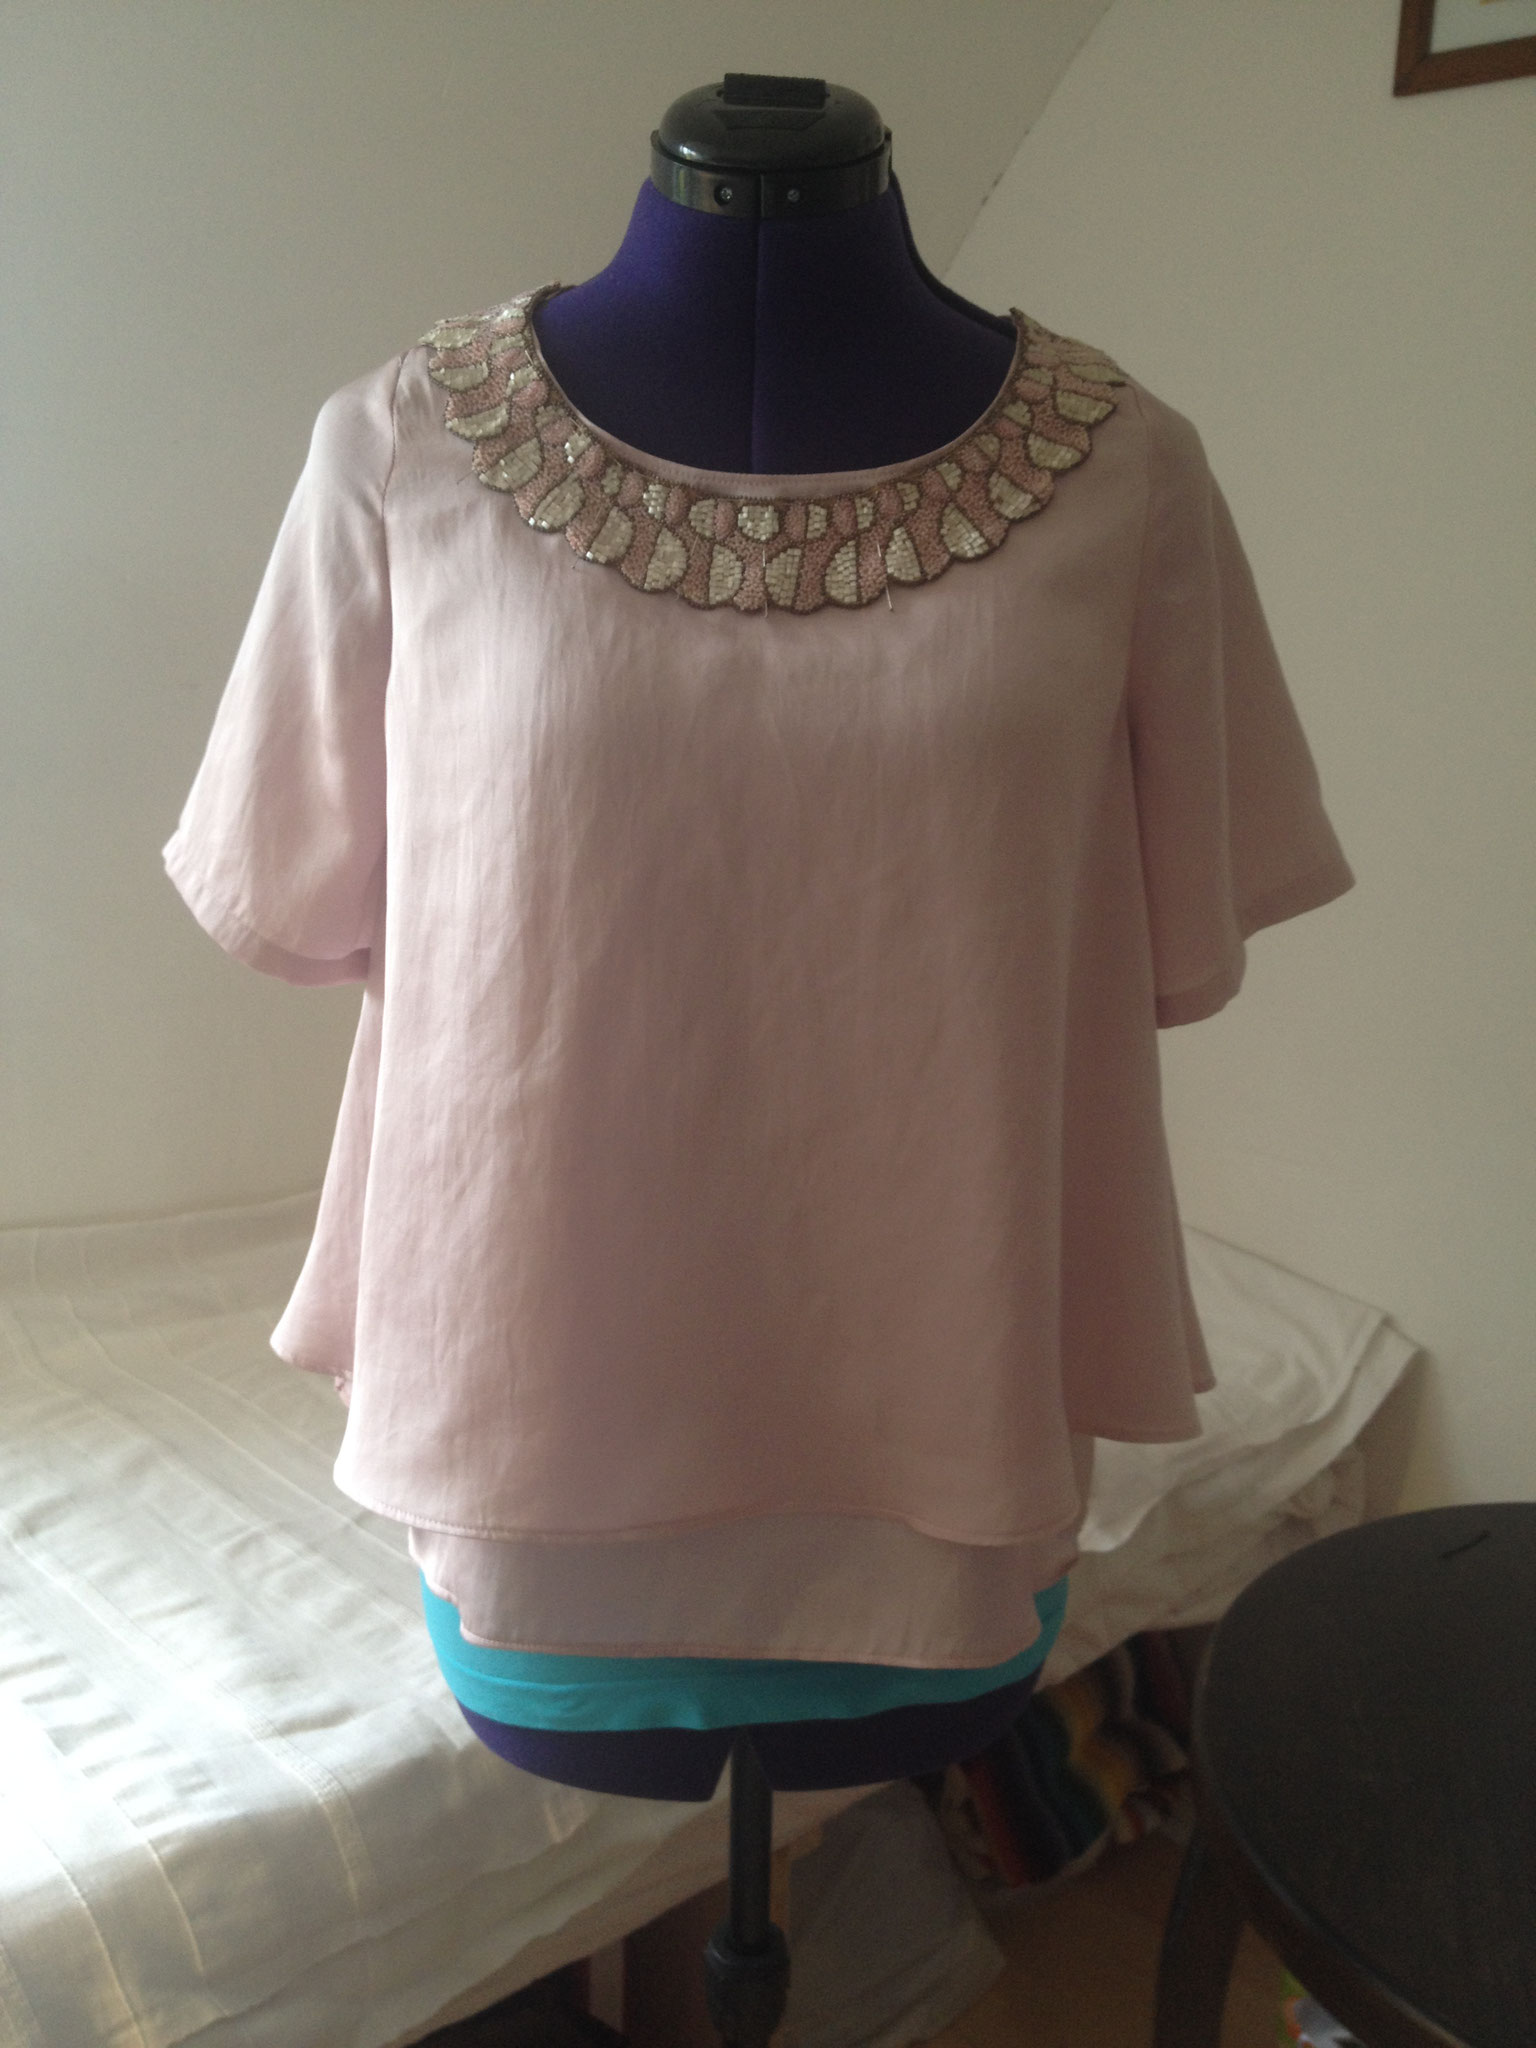 Bluse mit antiker Perlenapplikation